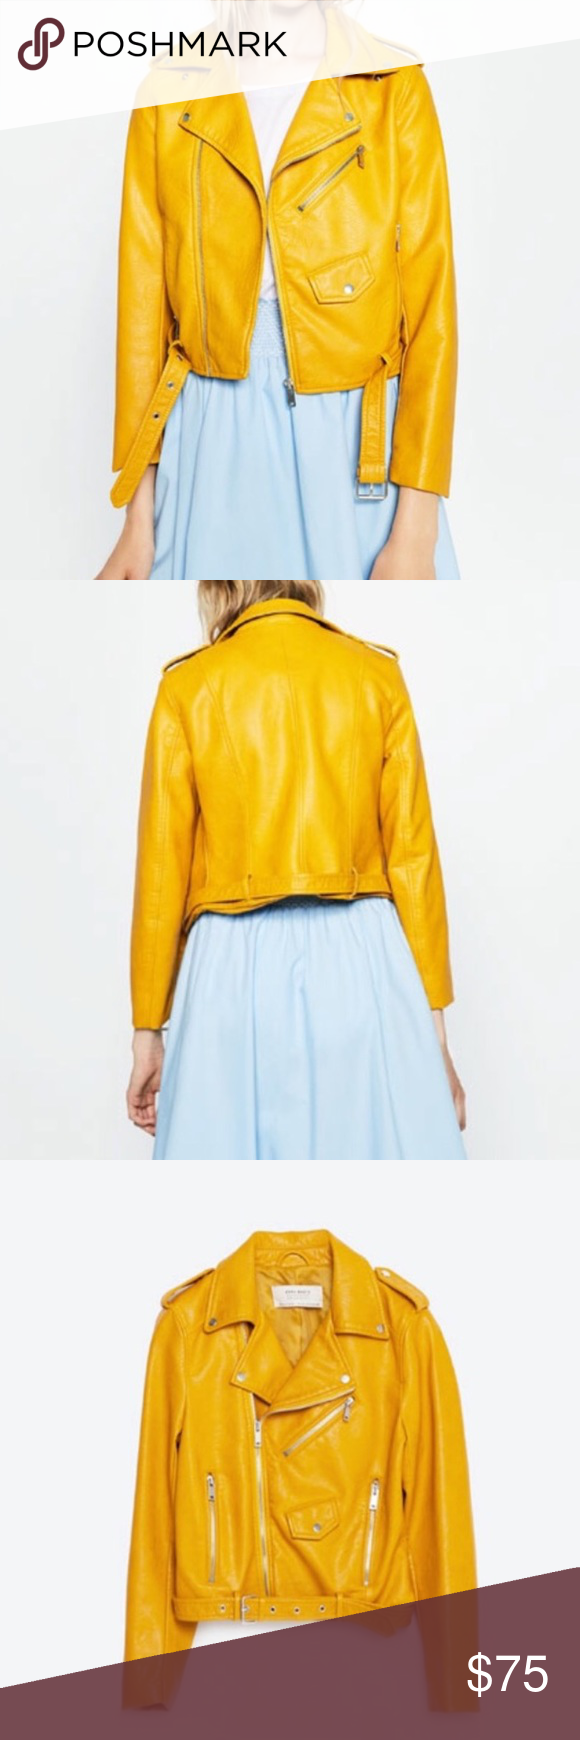 Zara Leather Jacket Mustard Yellow BRAND NEW WITH TAGS